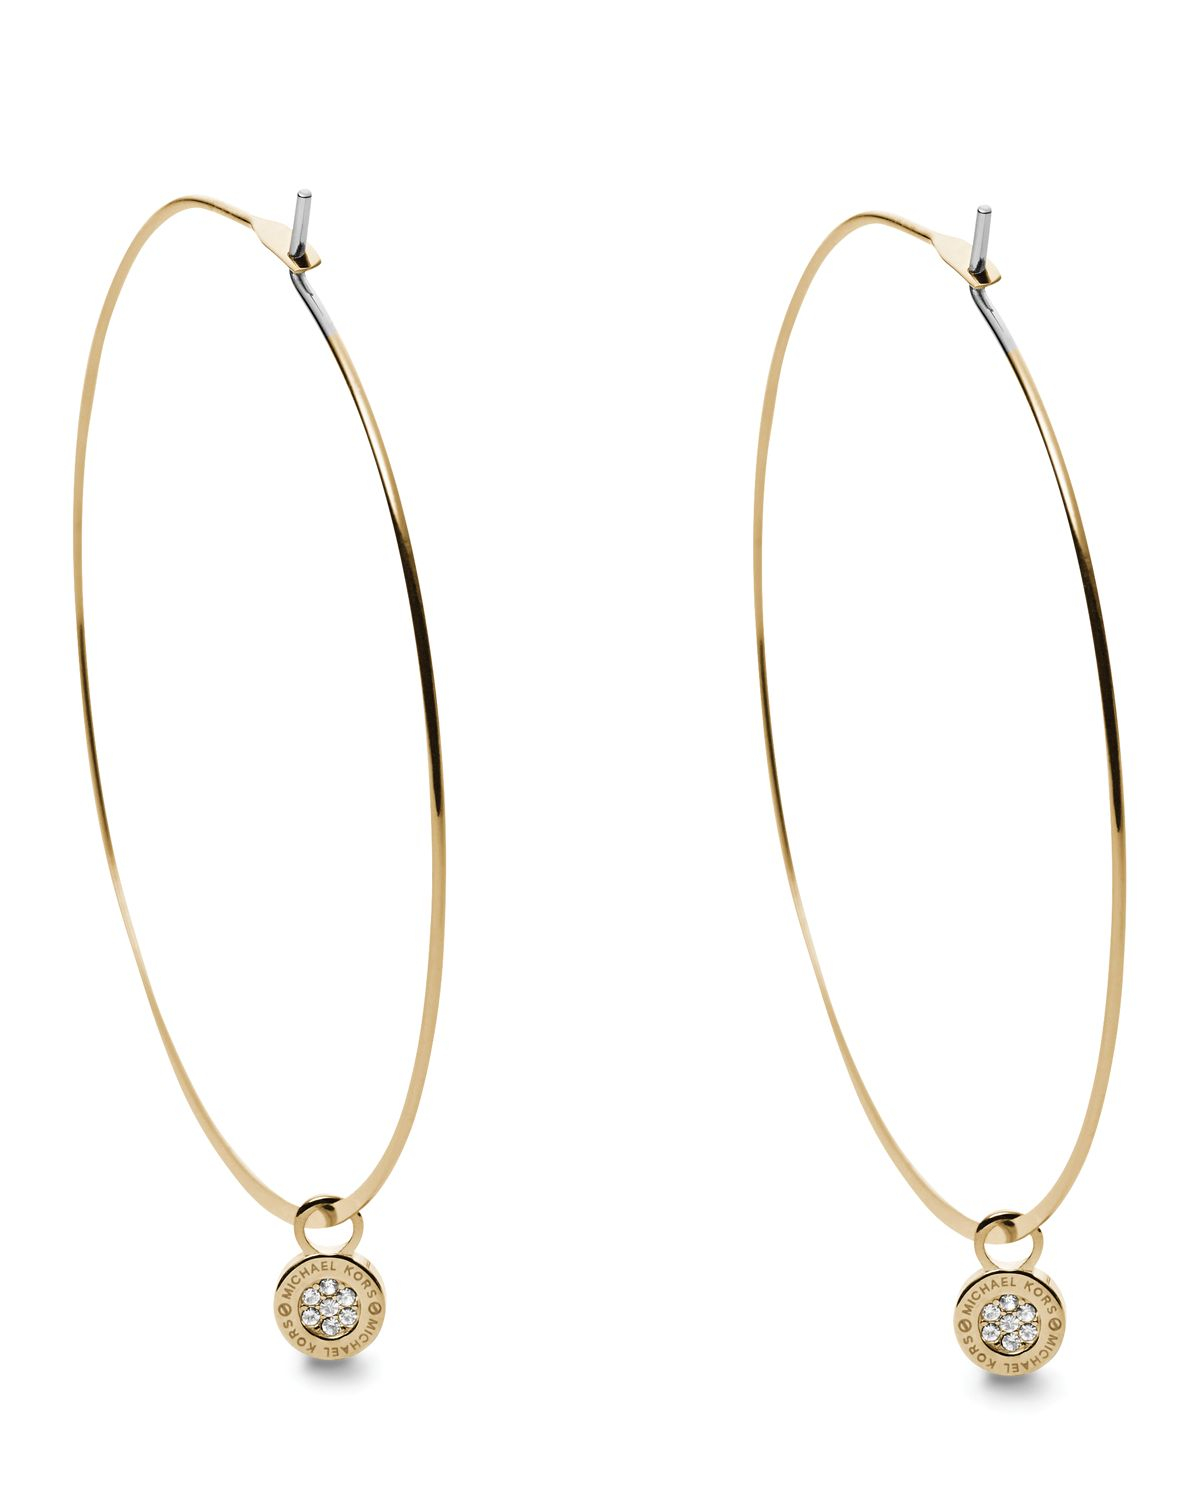 michael kors gold hoop earrings lyst michael kors whisper pave charm hoop earrings in 9013